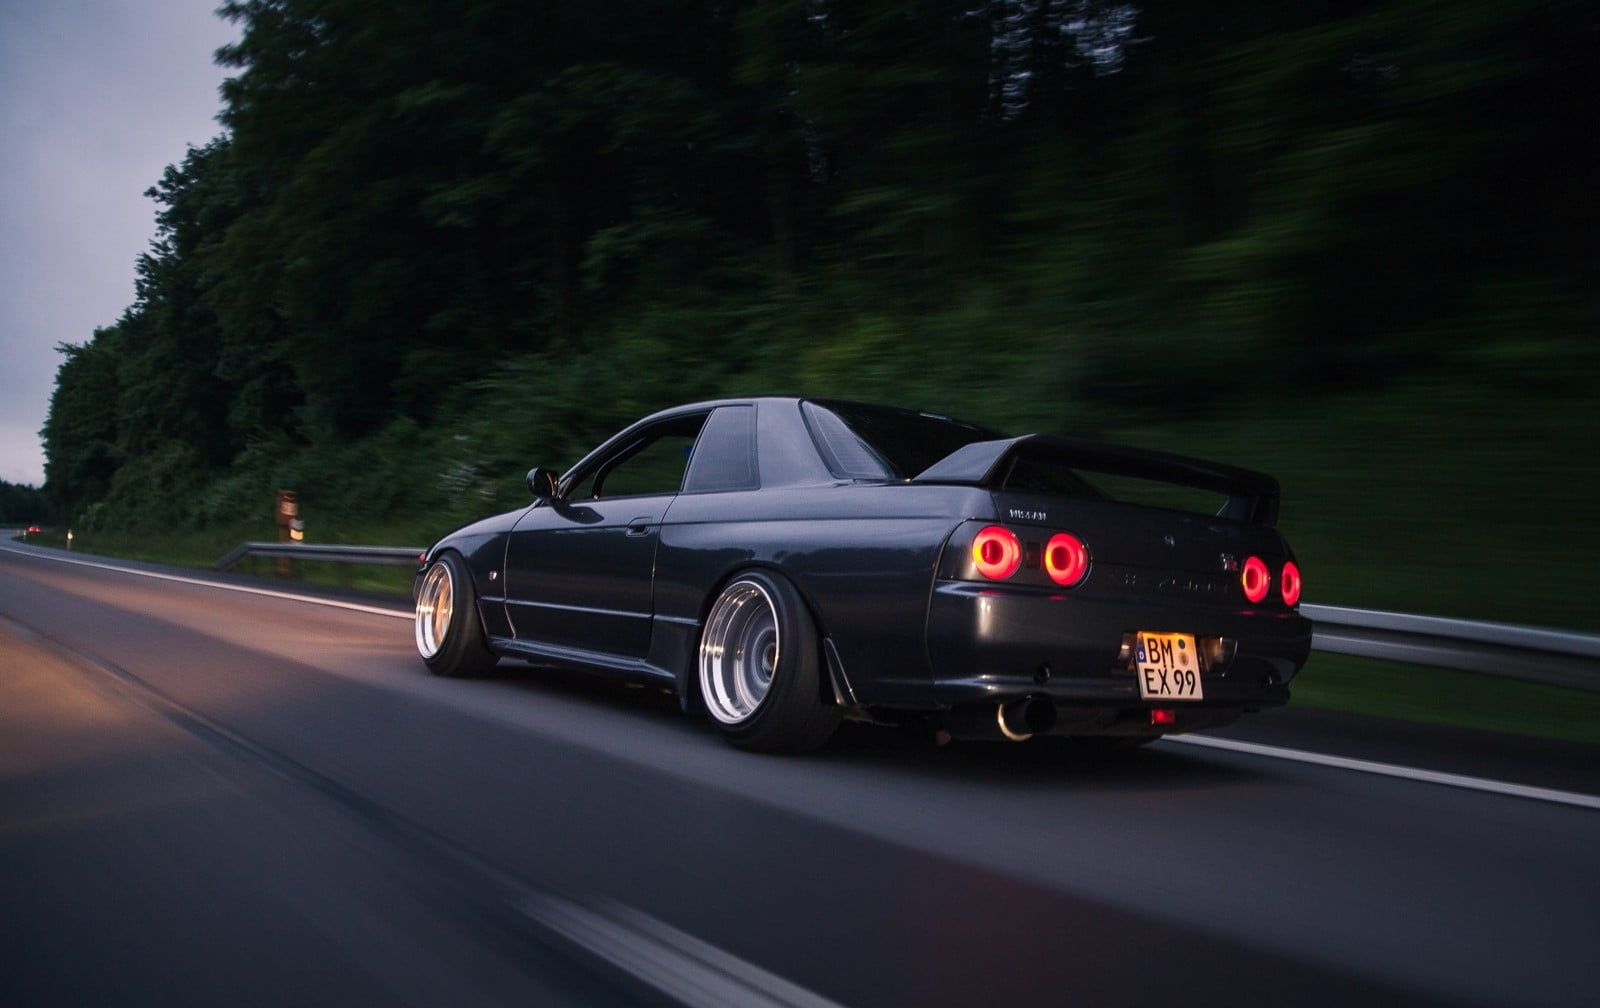 Skyline R32 Wallpapers Top Free Skyline R32 Backgrounds Wallpaperaccess